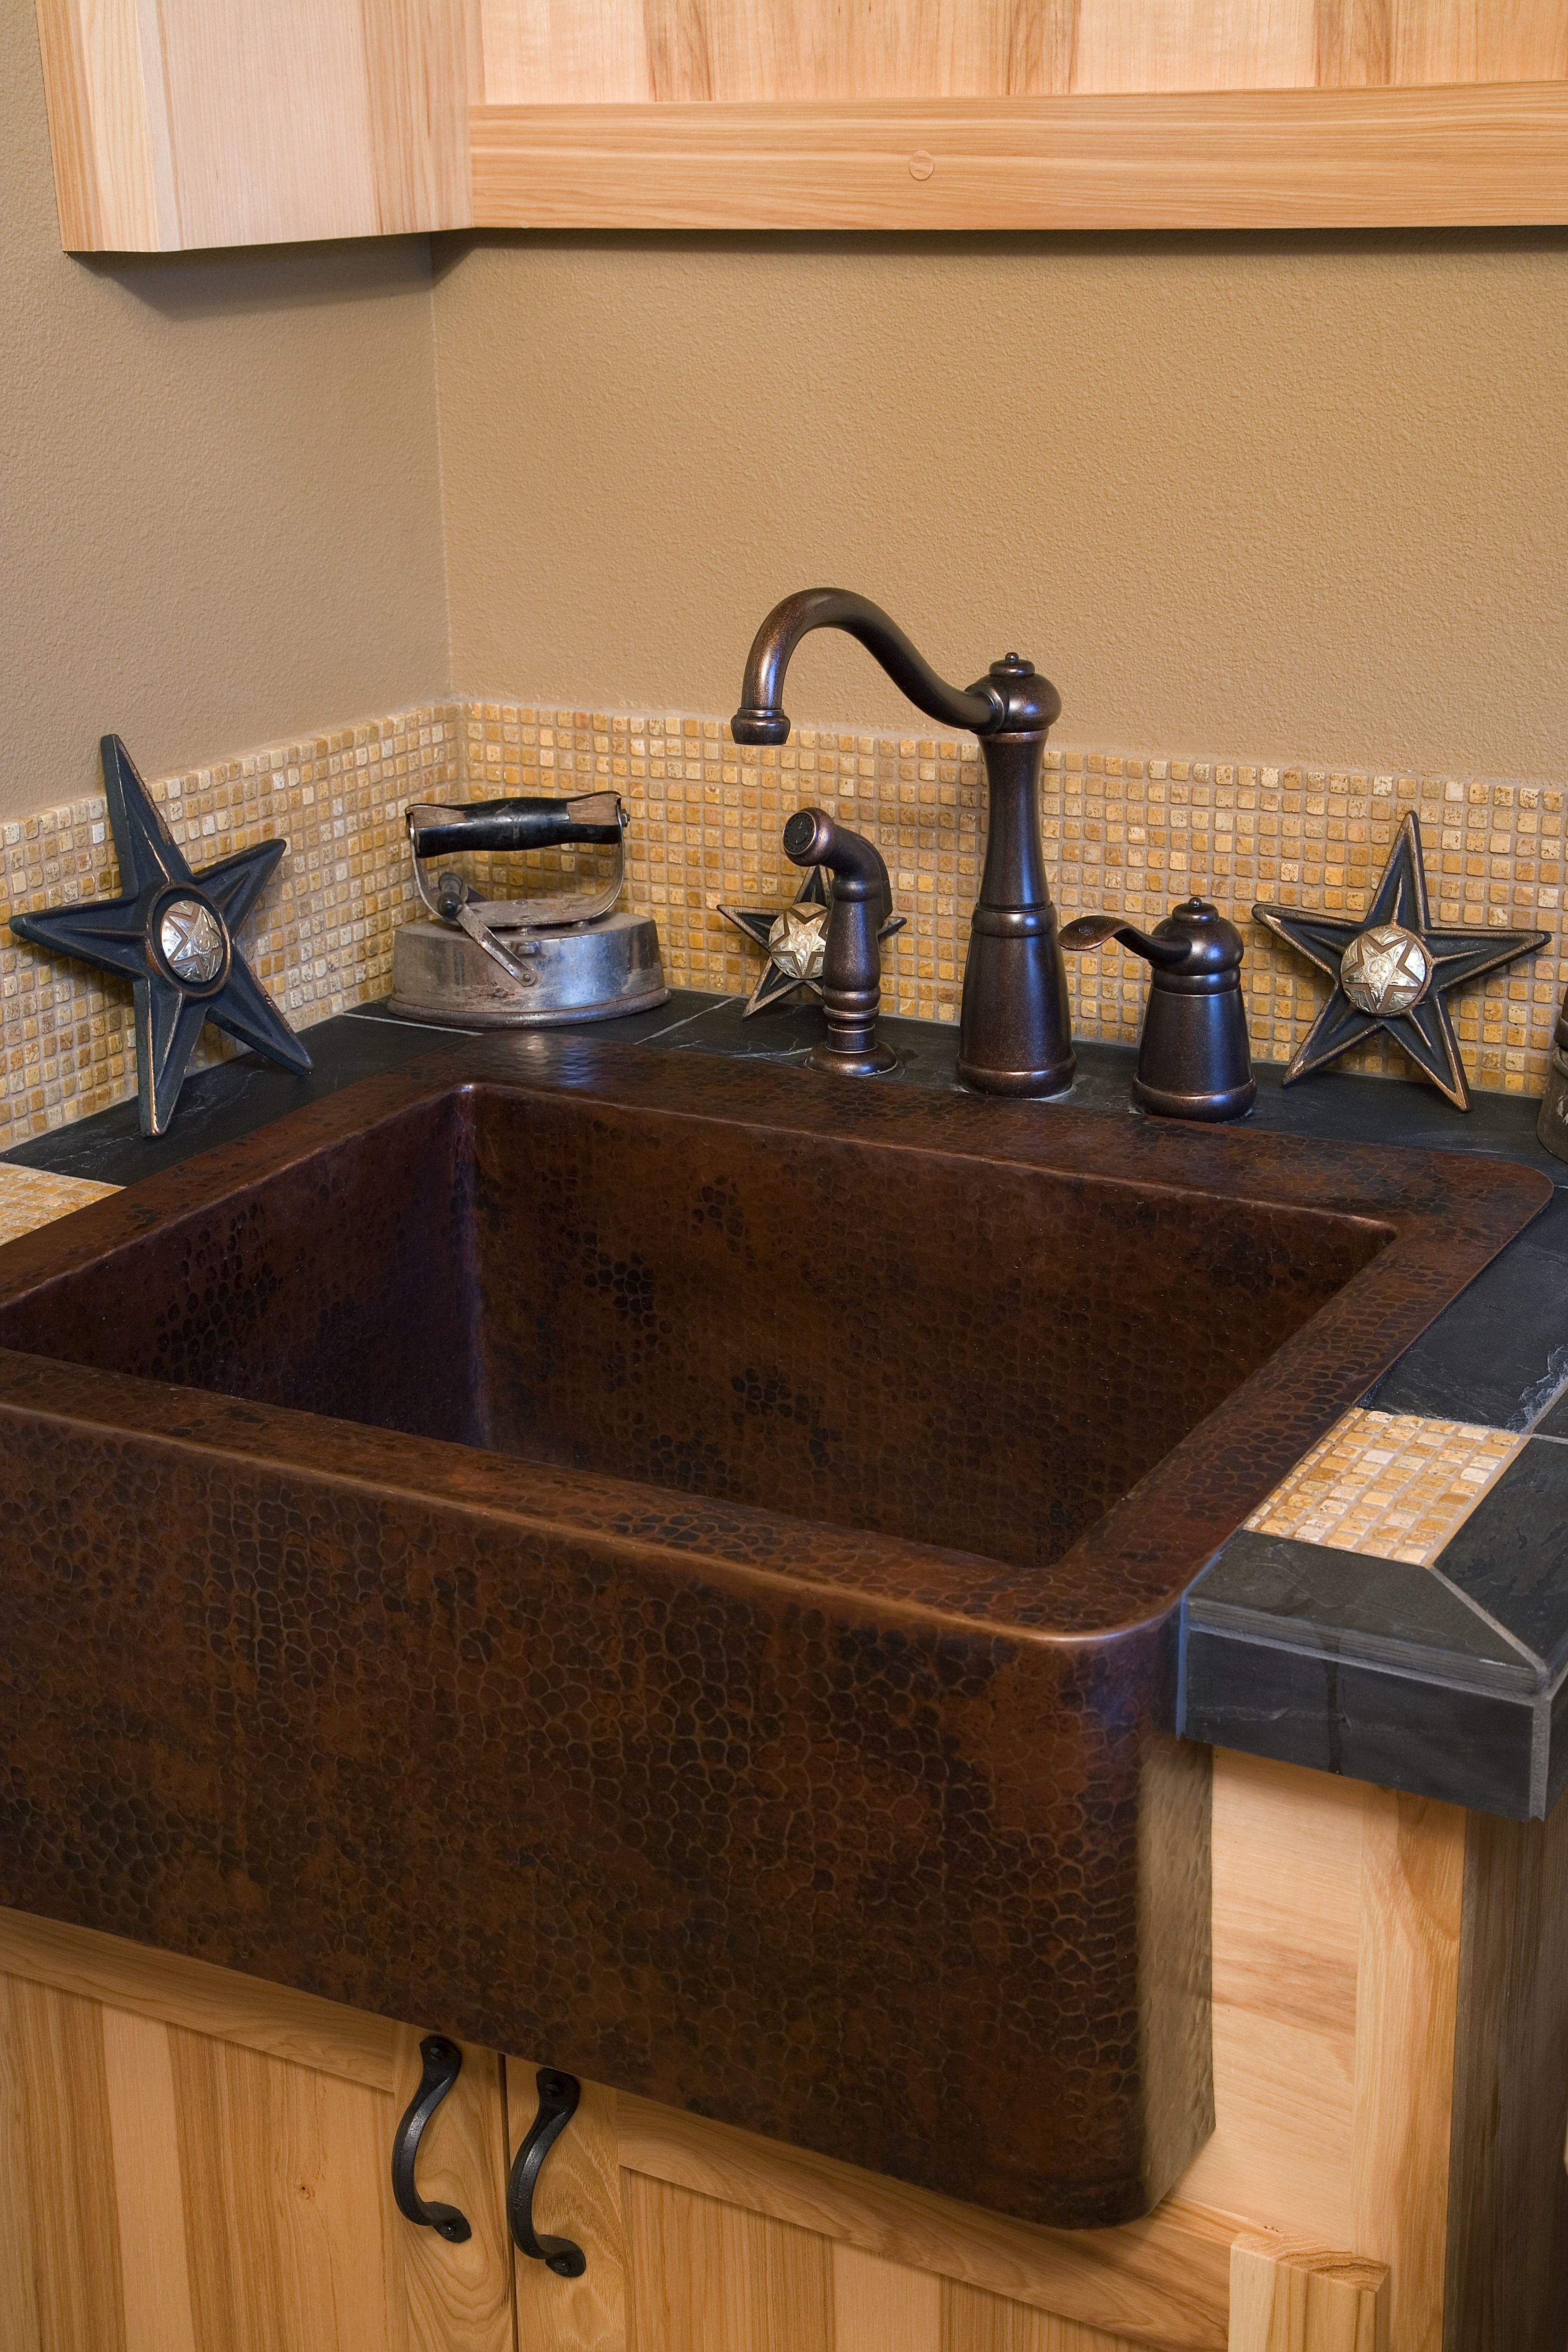 Belle Foret Farmhouse Sink Oil Rubbed Bronze Farmhouse Sink Asmallnation